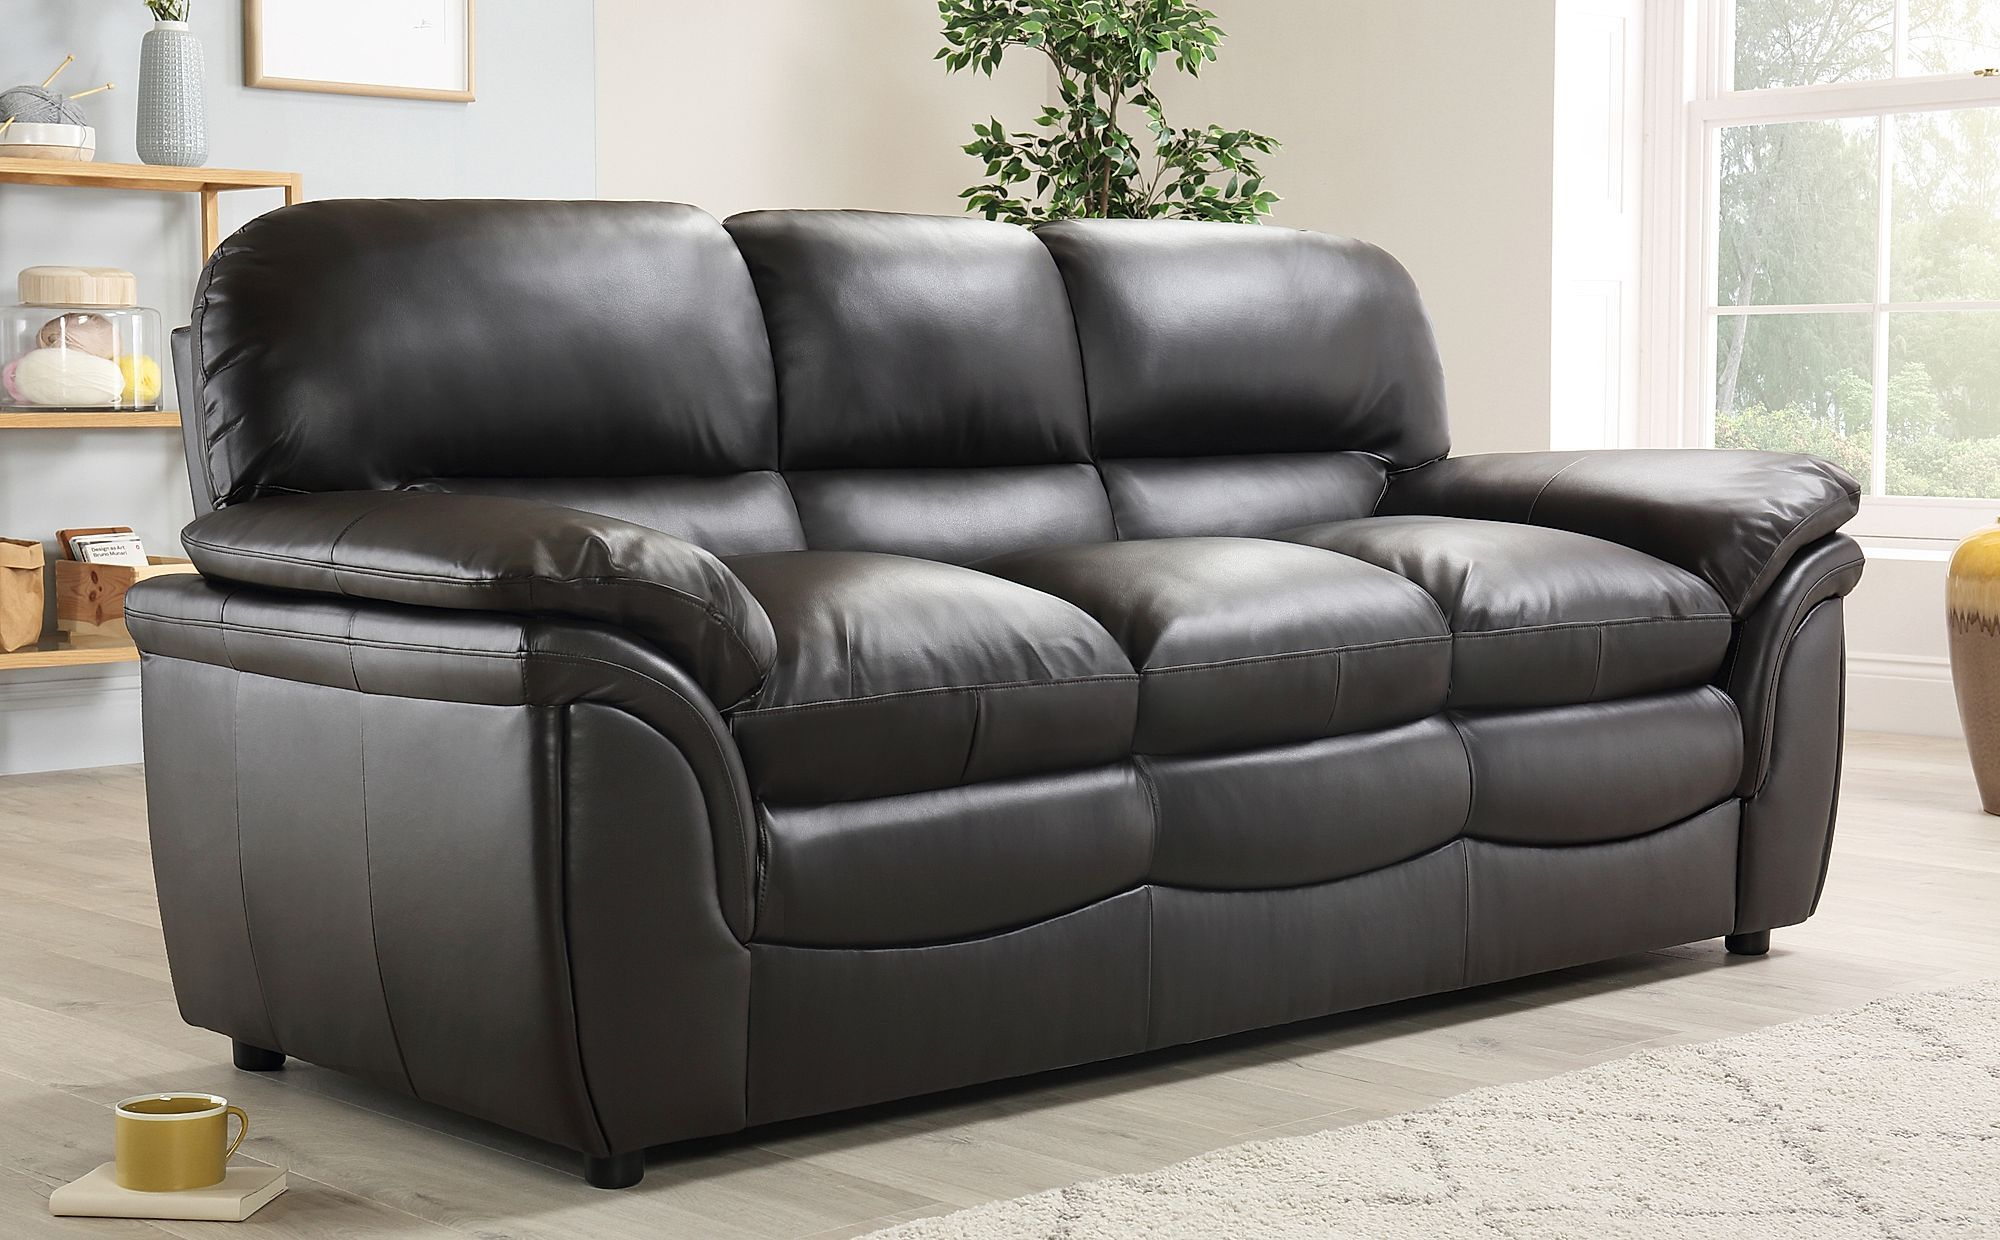 165 Reference Of Black Chair Lounge In 2020 Sofa Bed Design Sofa Uk Black Leather Sofas